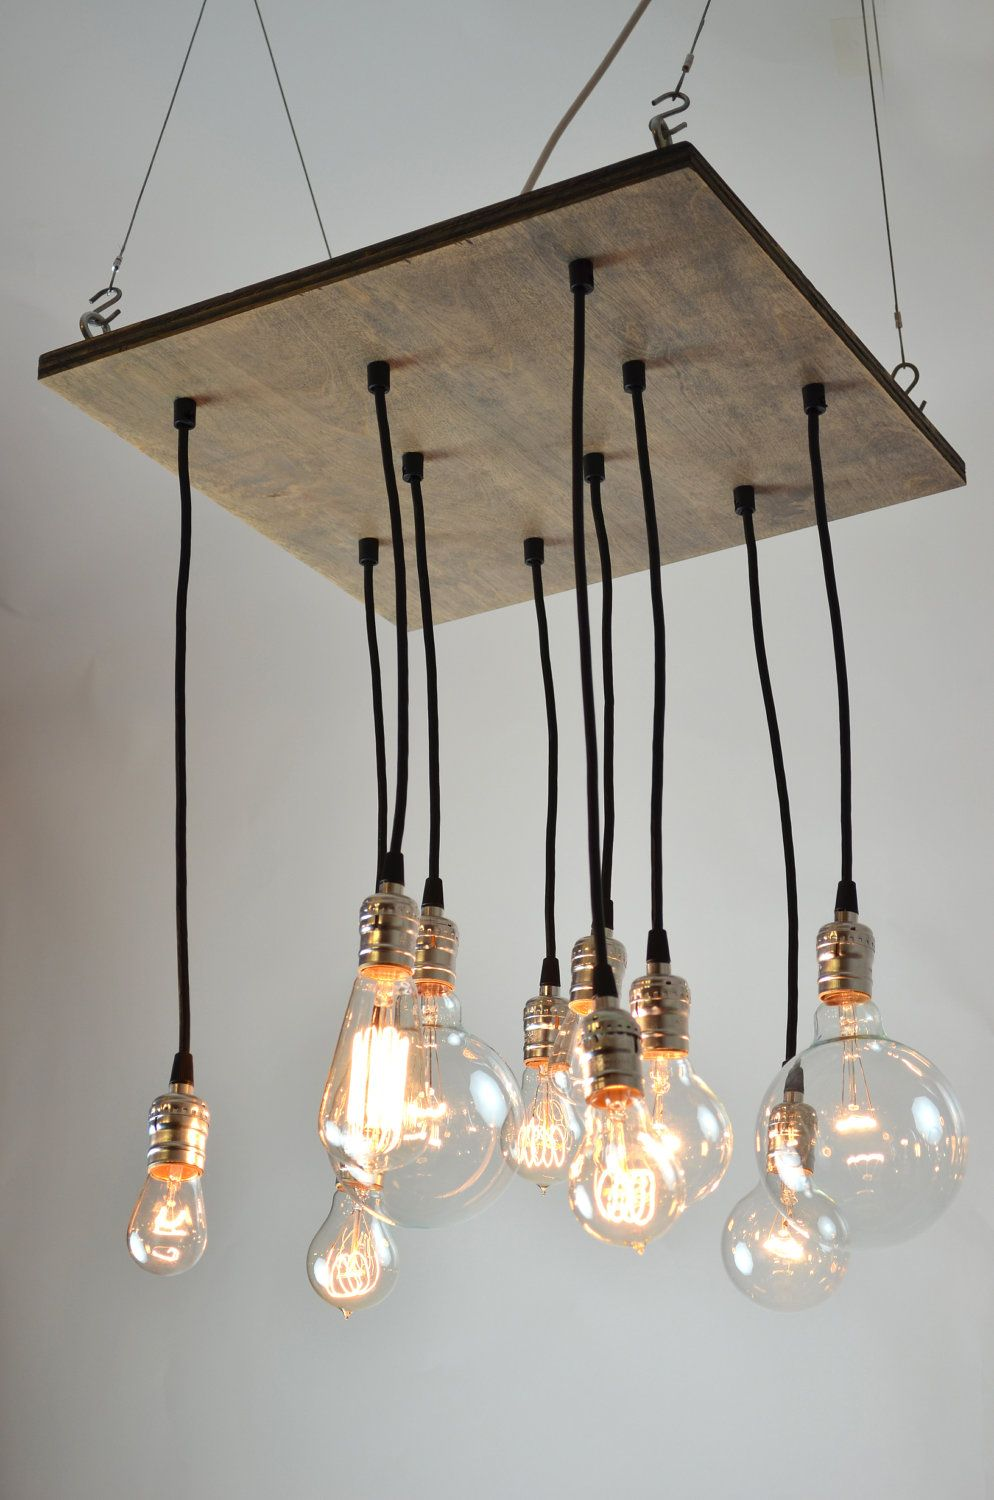 Square Industrial Style Chandelier Light Fixture made from ...